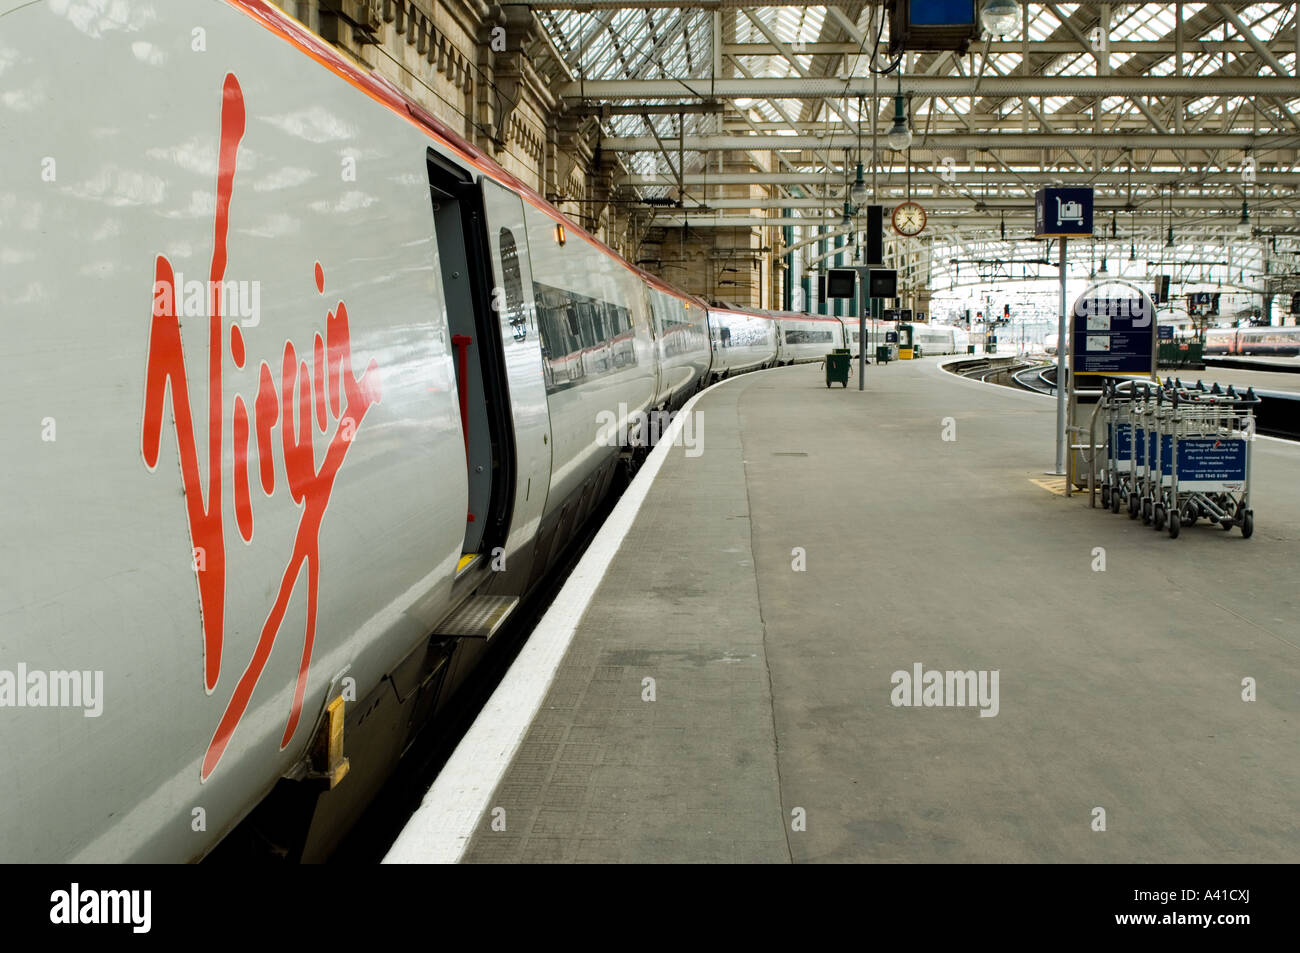 Glasgow Central Station the main railway station for Glasgow feeding to all stations south, including Virgin Trains. - Stock Image